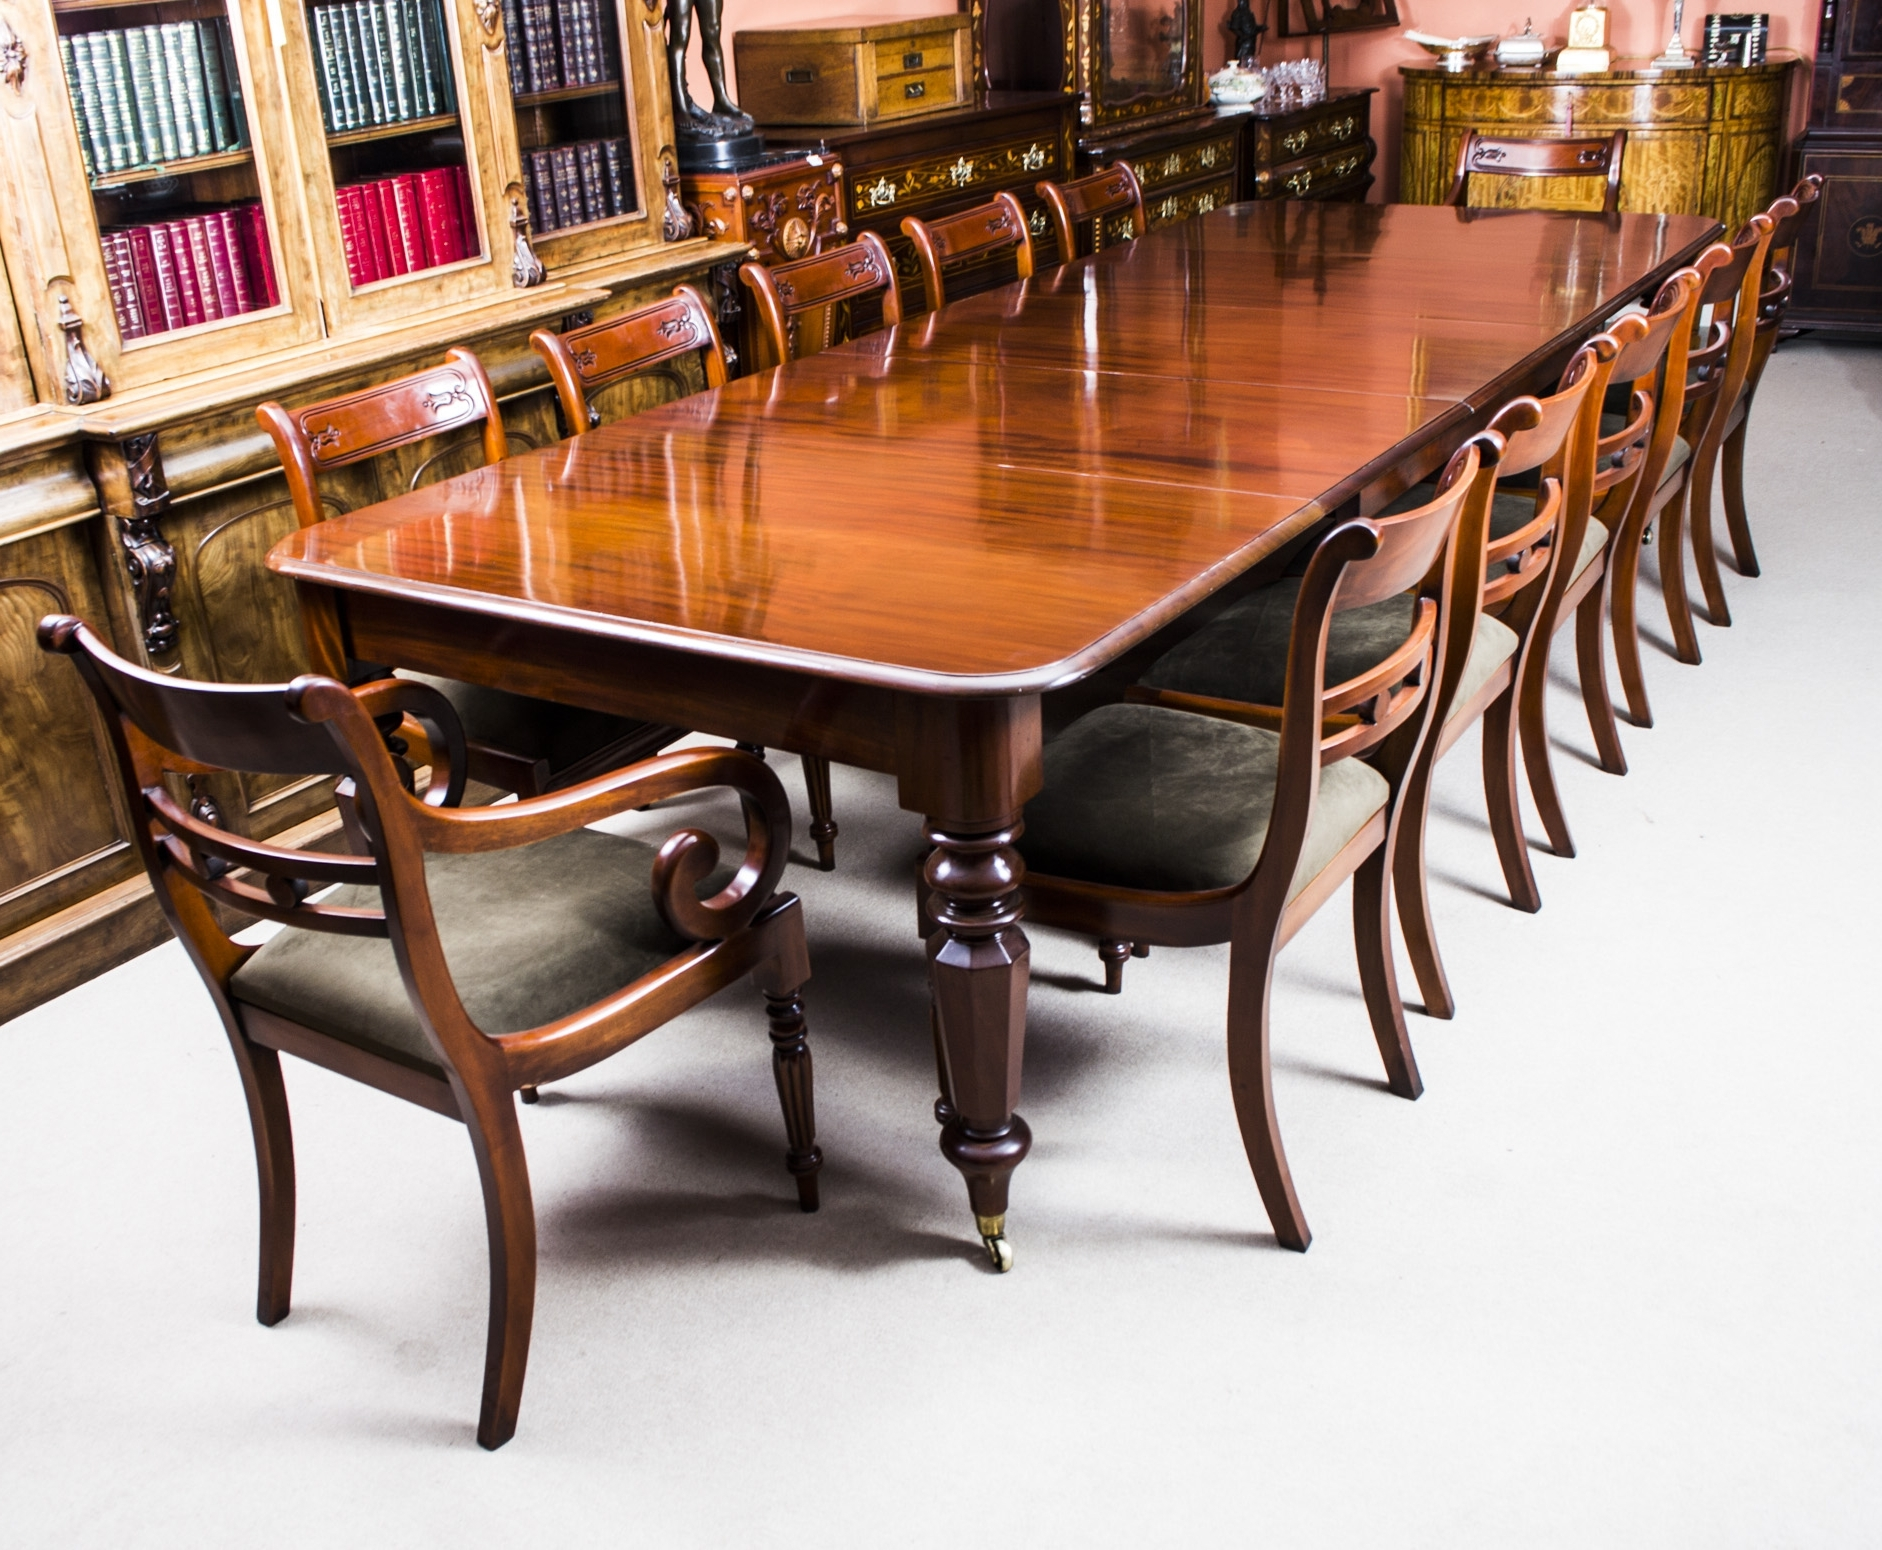 Mahogany Dining Tables And 4 Chairs With Preferred Antique Wiliam Iv Mahogany Extending Dining Table & 12 Chairs (View 15 of 25)